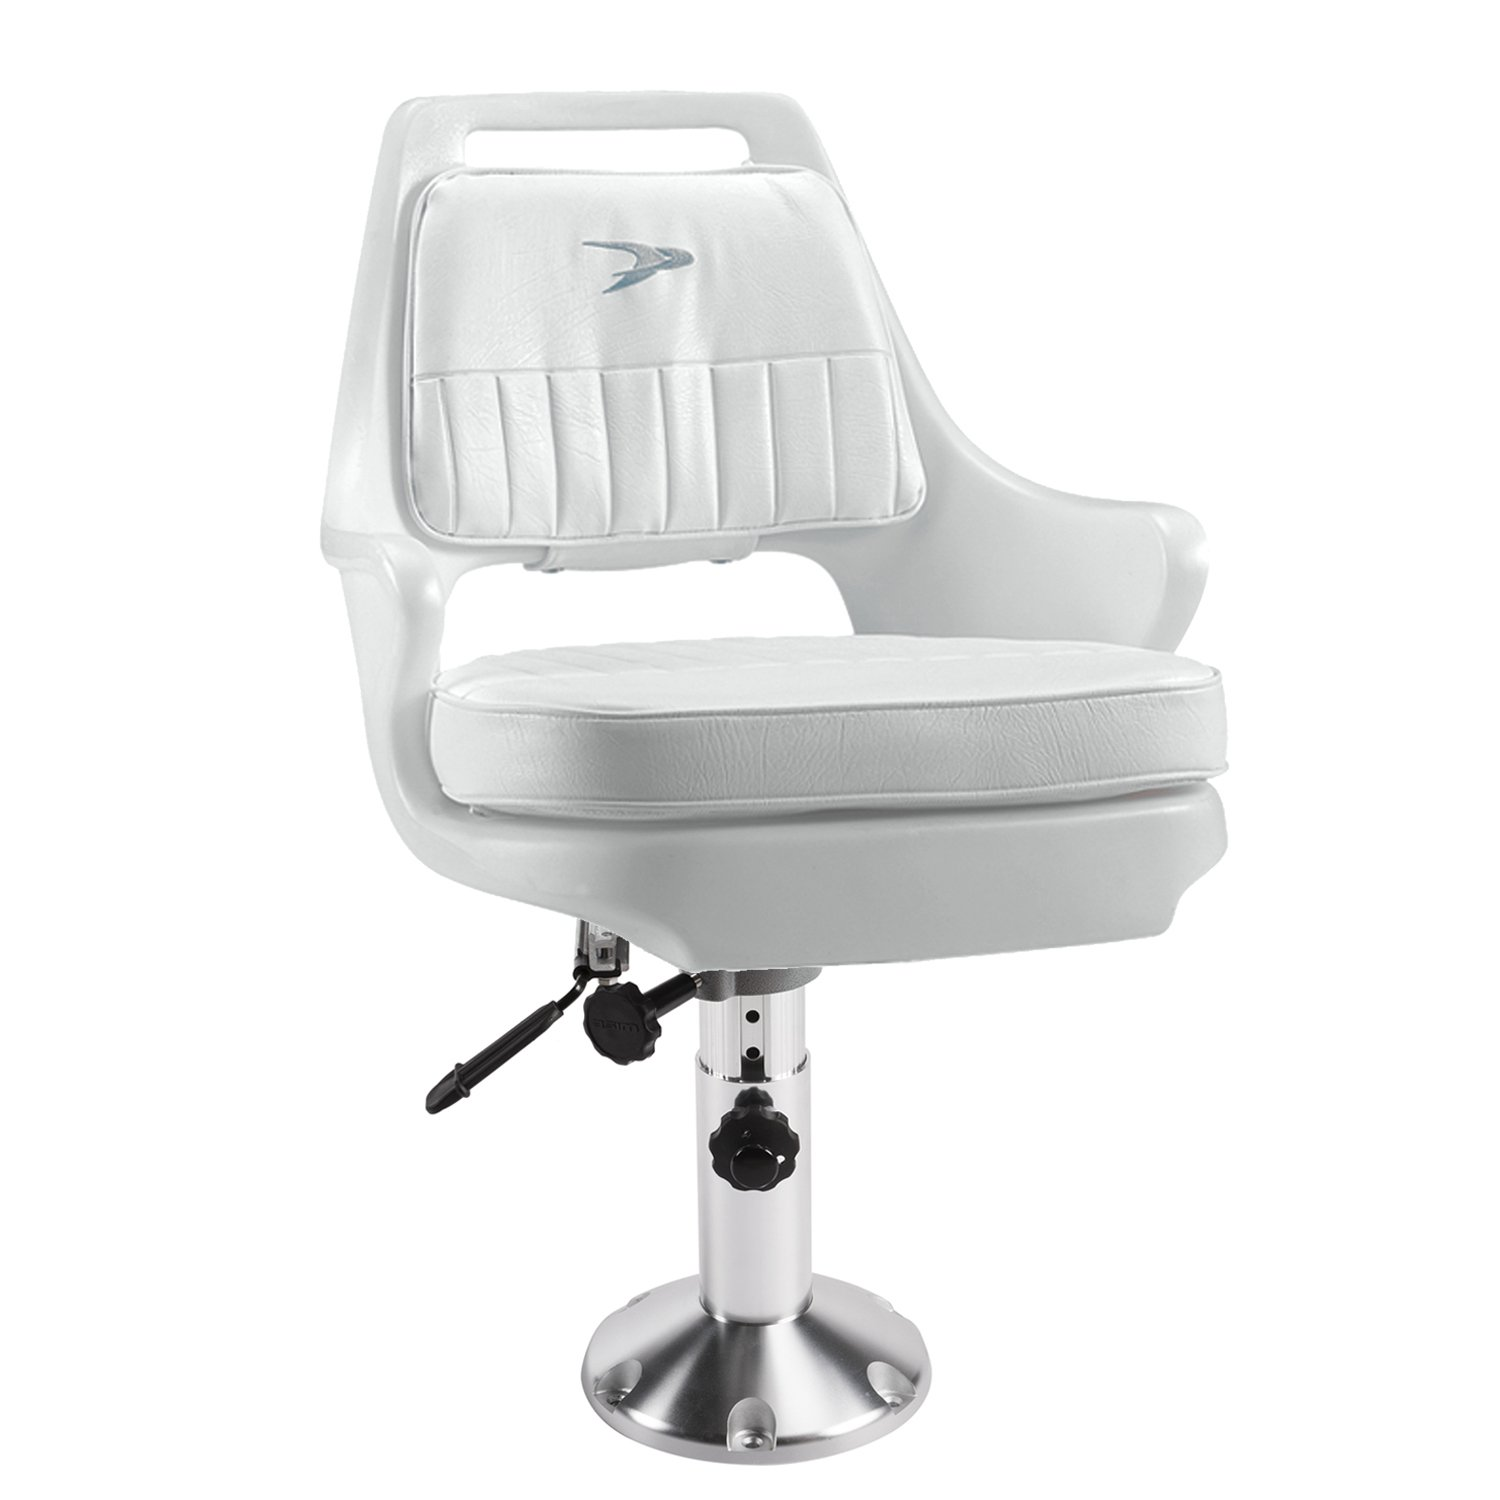 Wise 8WD015-6-710 Standard Pilot Chair with Cushions, 12-18'' Adjustable Height Pedestal and Seat Slide, White by Wise